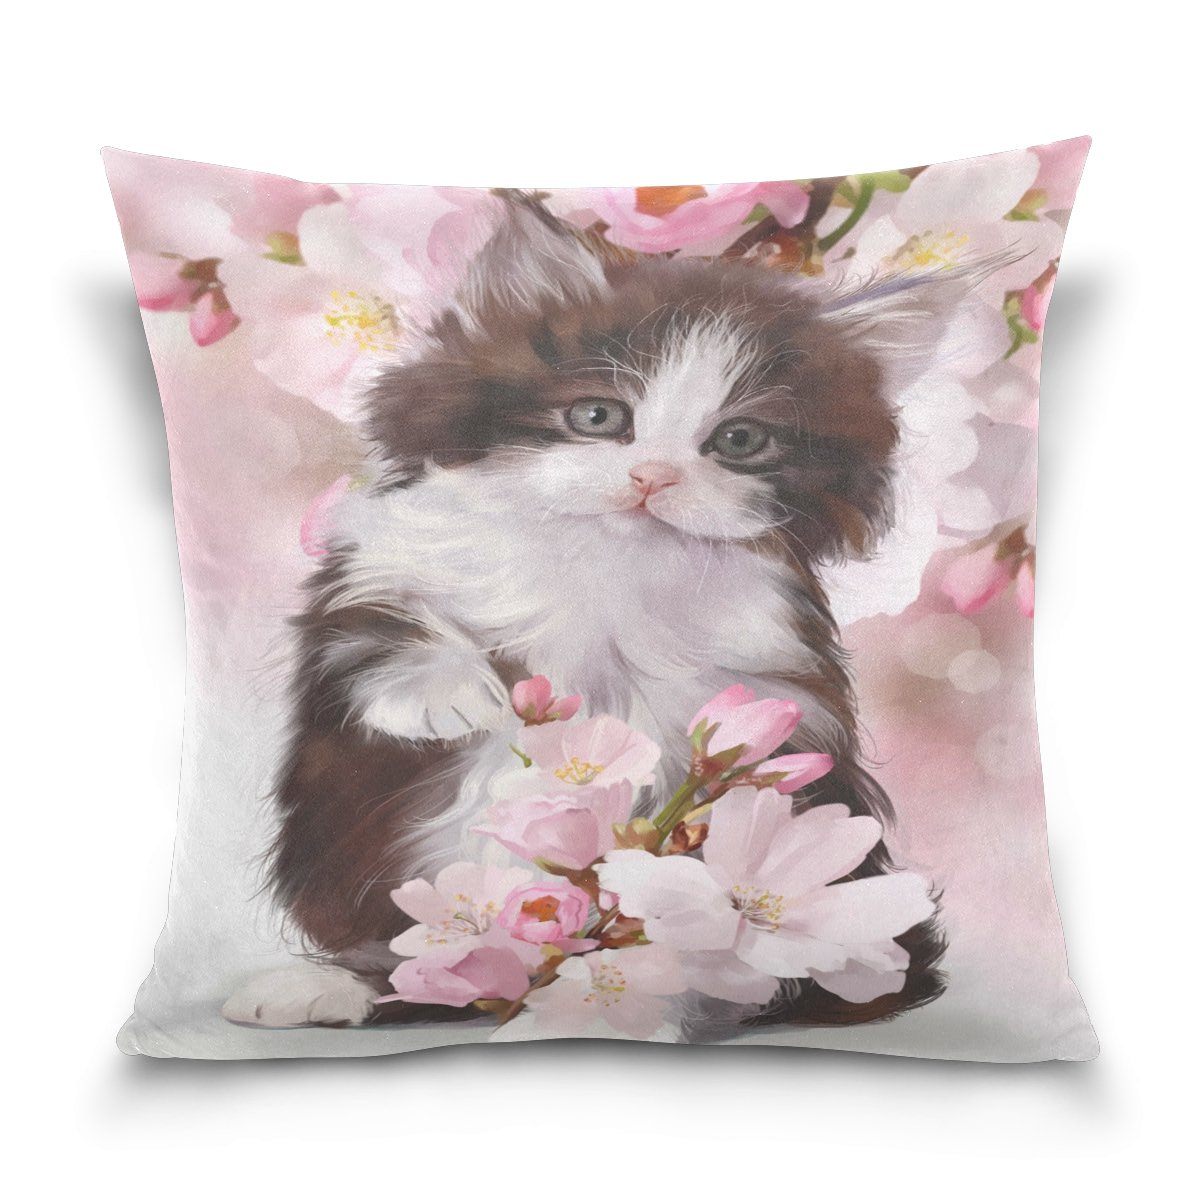 ALAZA Watercolor Kitten Cat Cotton Pillowcase 16 X 16 Inches Twin Sides, Floral Flower Cute Animal Cat Pillow Case Sham Cover Protector Decorative for Home Hotel Couch Ded